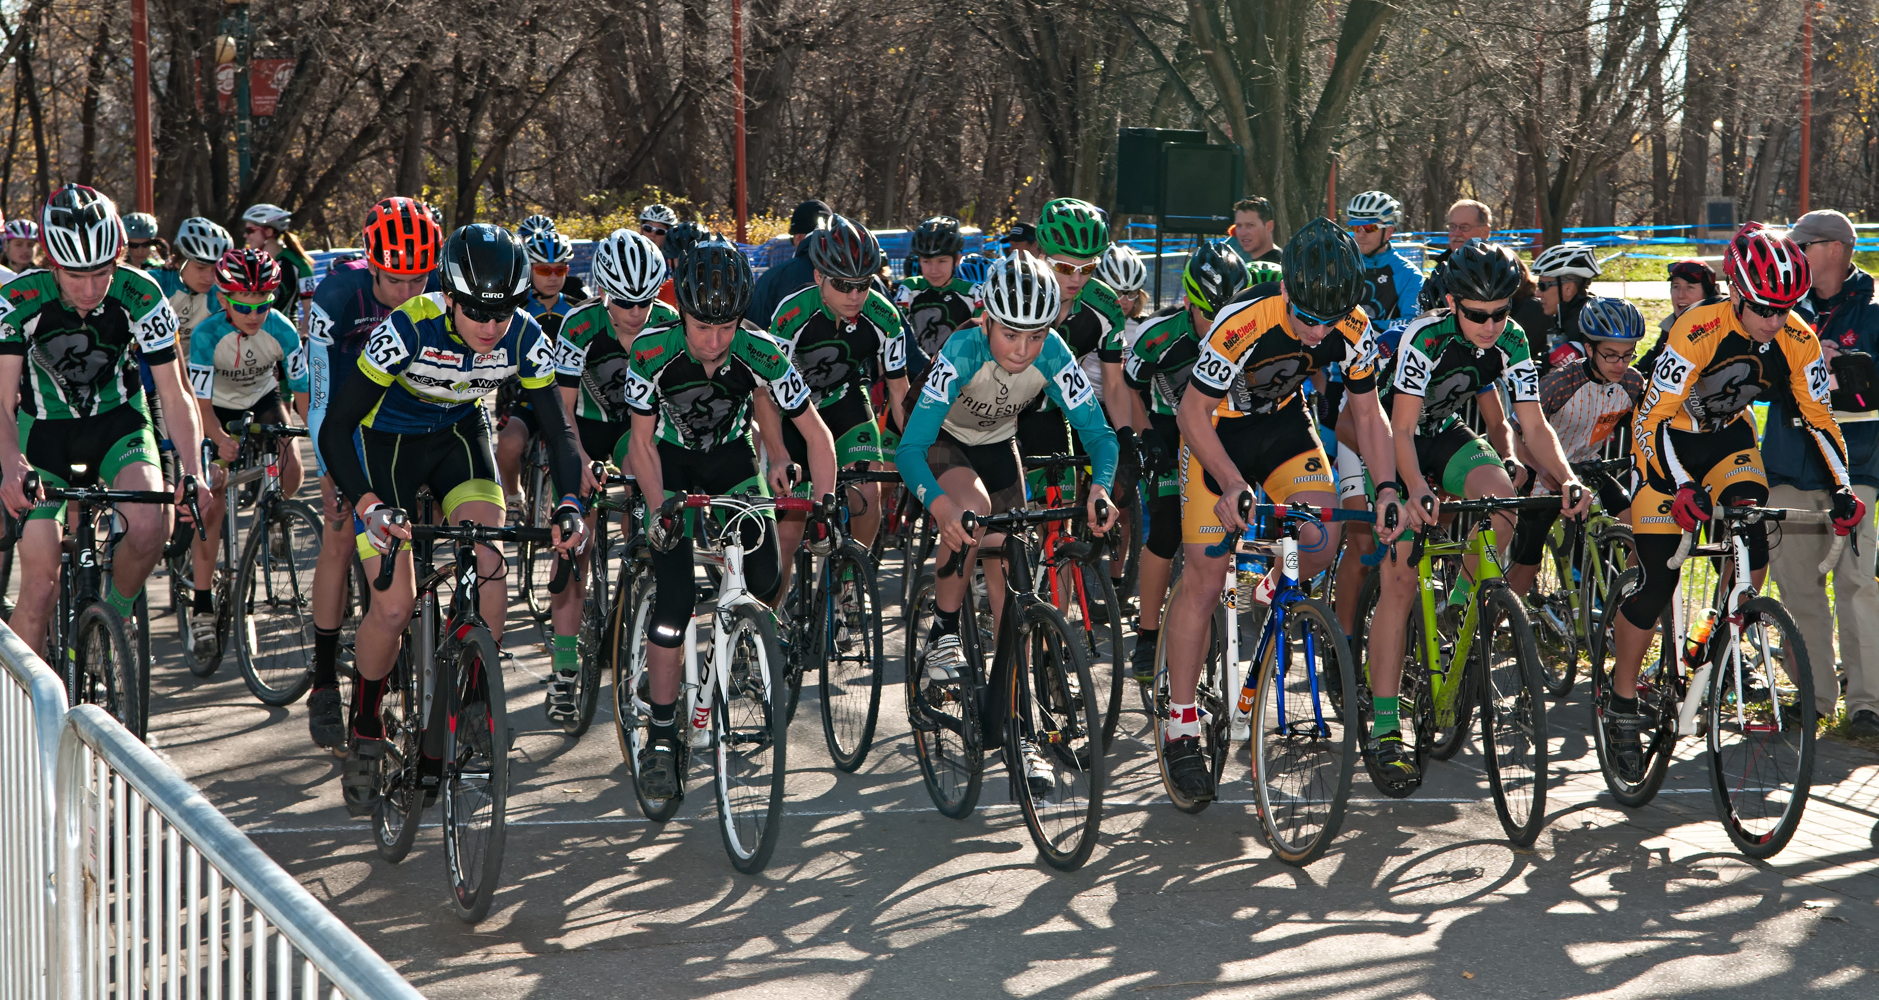 2014 Cyclocross Nationals - one of the races at the Forks